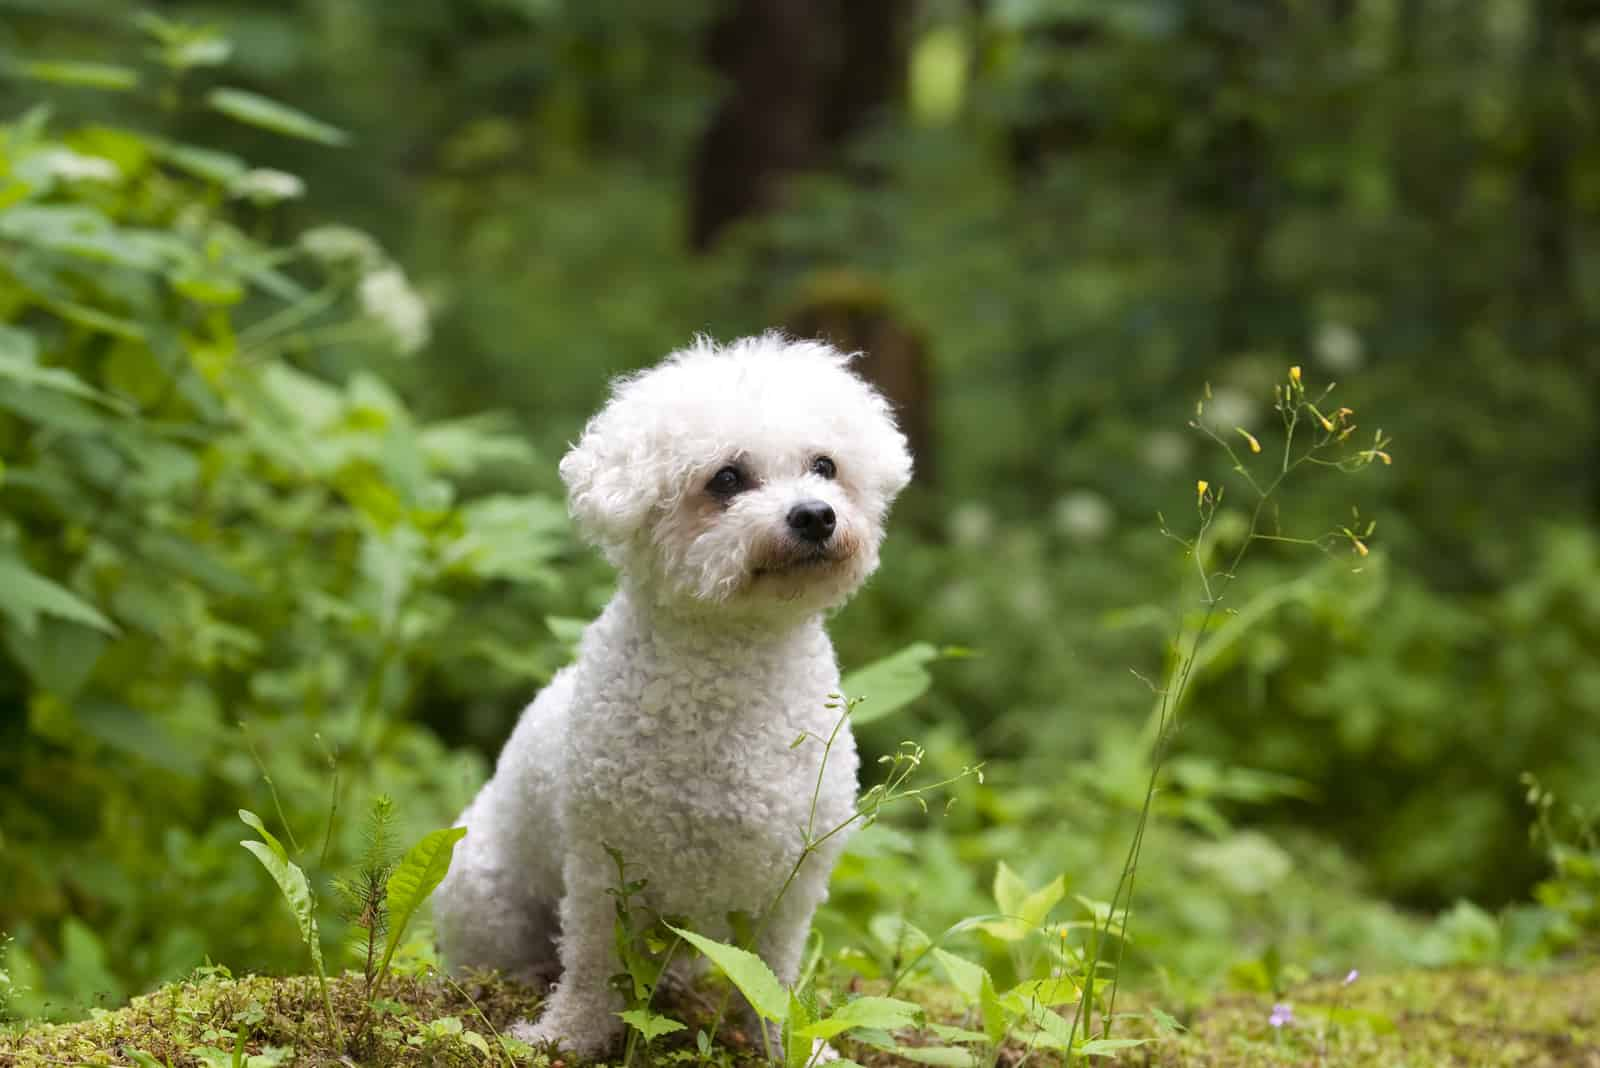 Bichon Frise female with beautiful expression